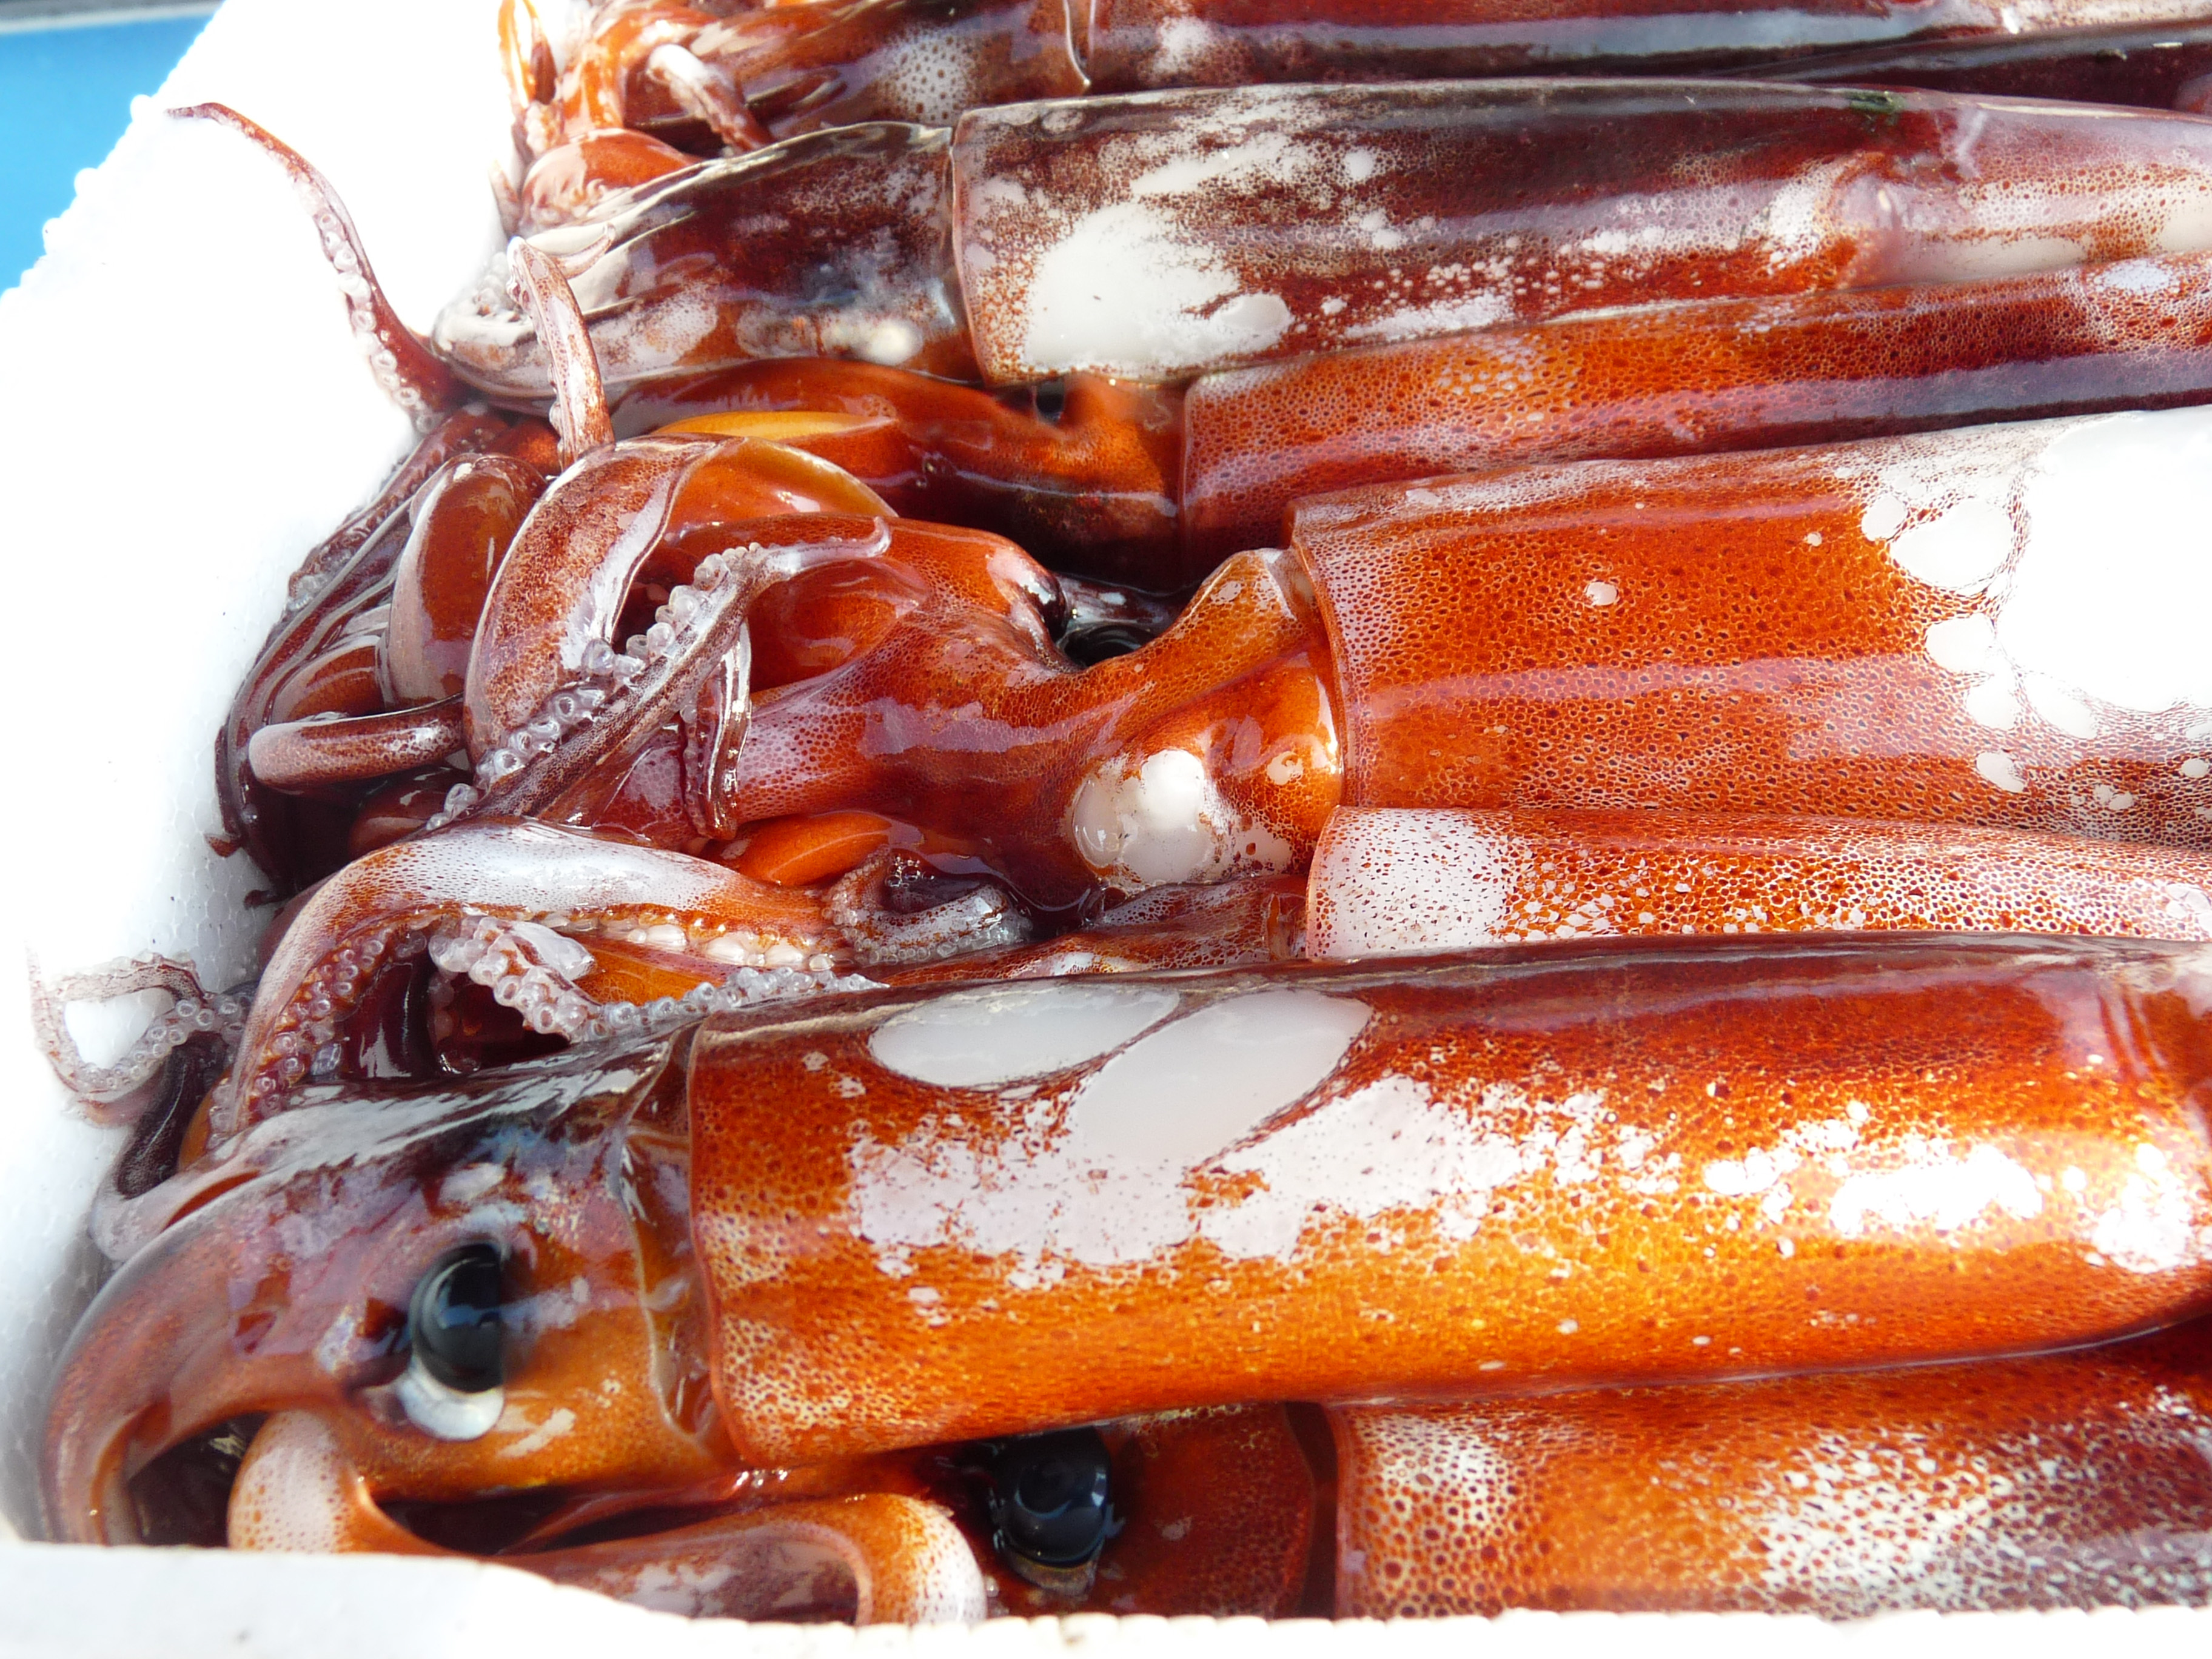 Squid as food - Wikipedia